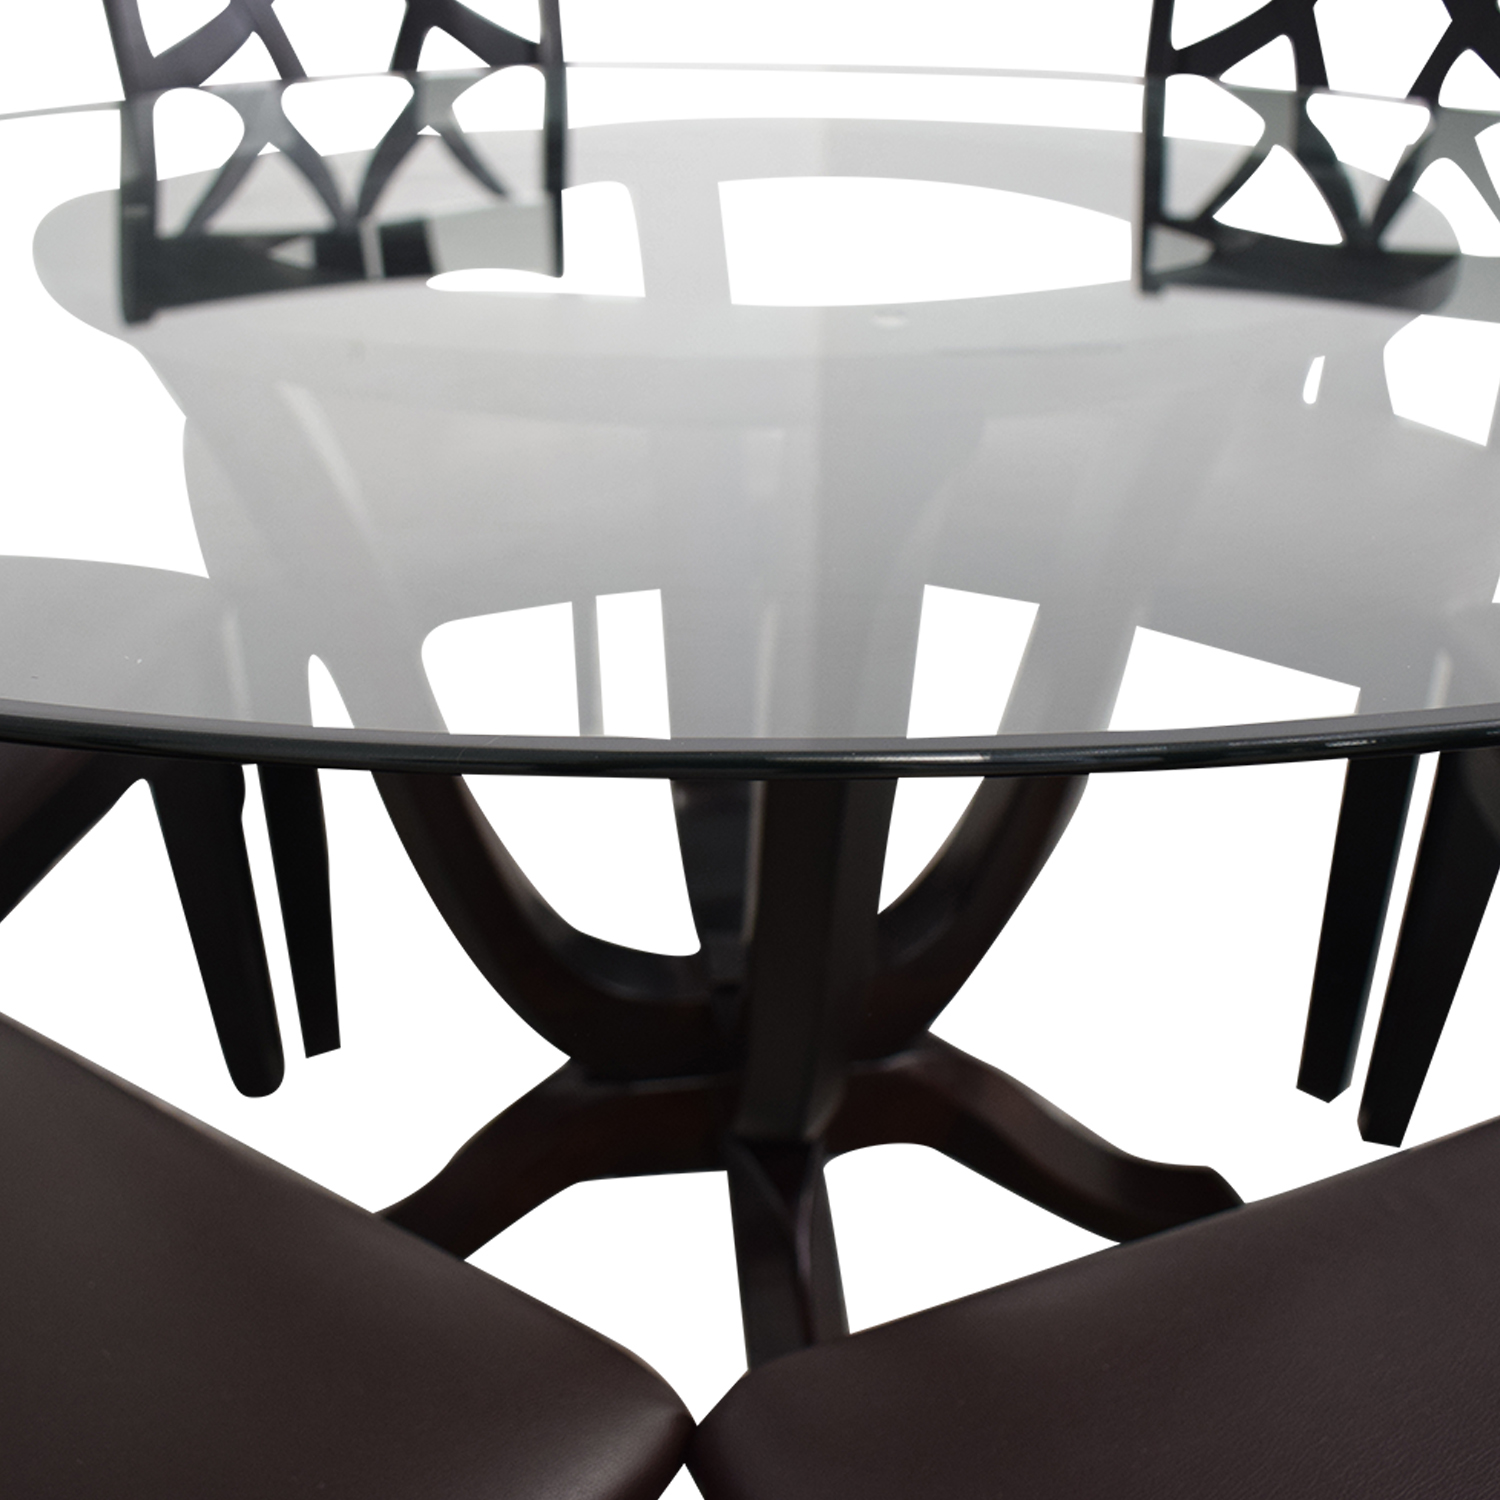 Raymour & Flanigan Raymour & Flanigan Contemporary Style Round Table With Six chairs second hand